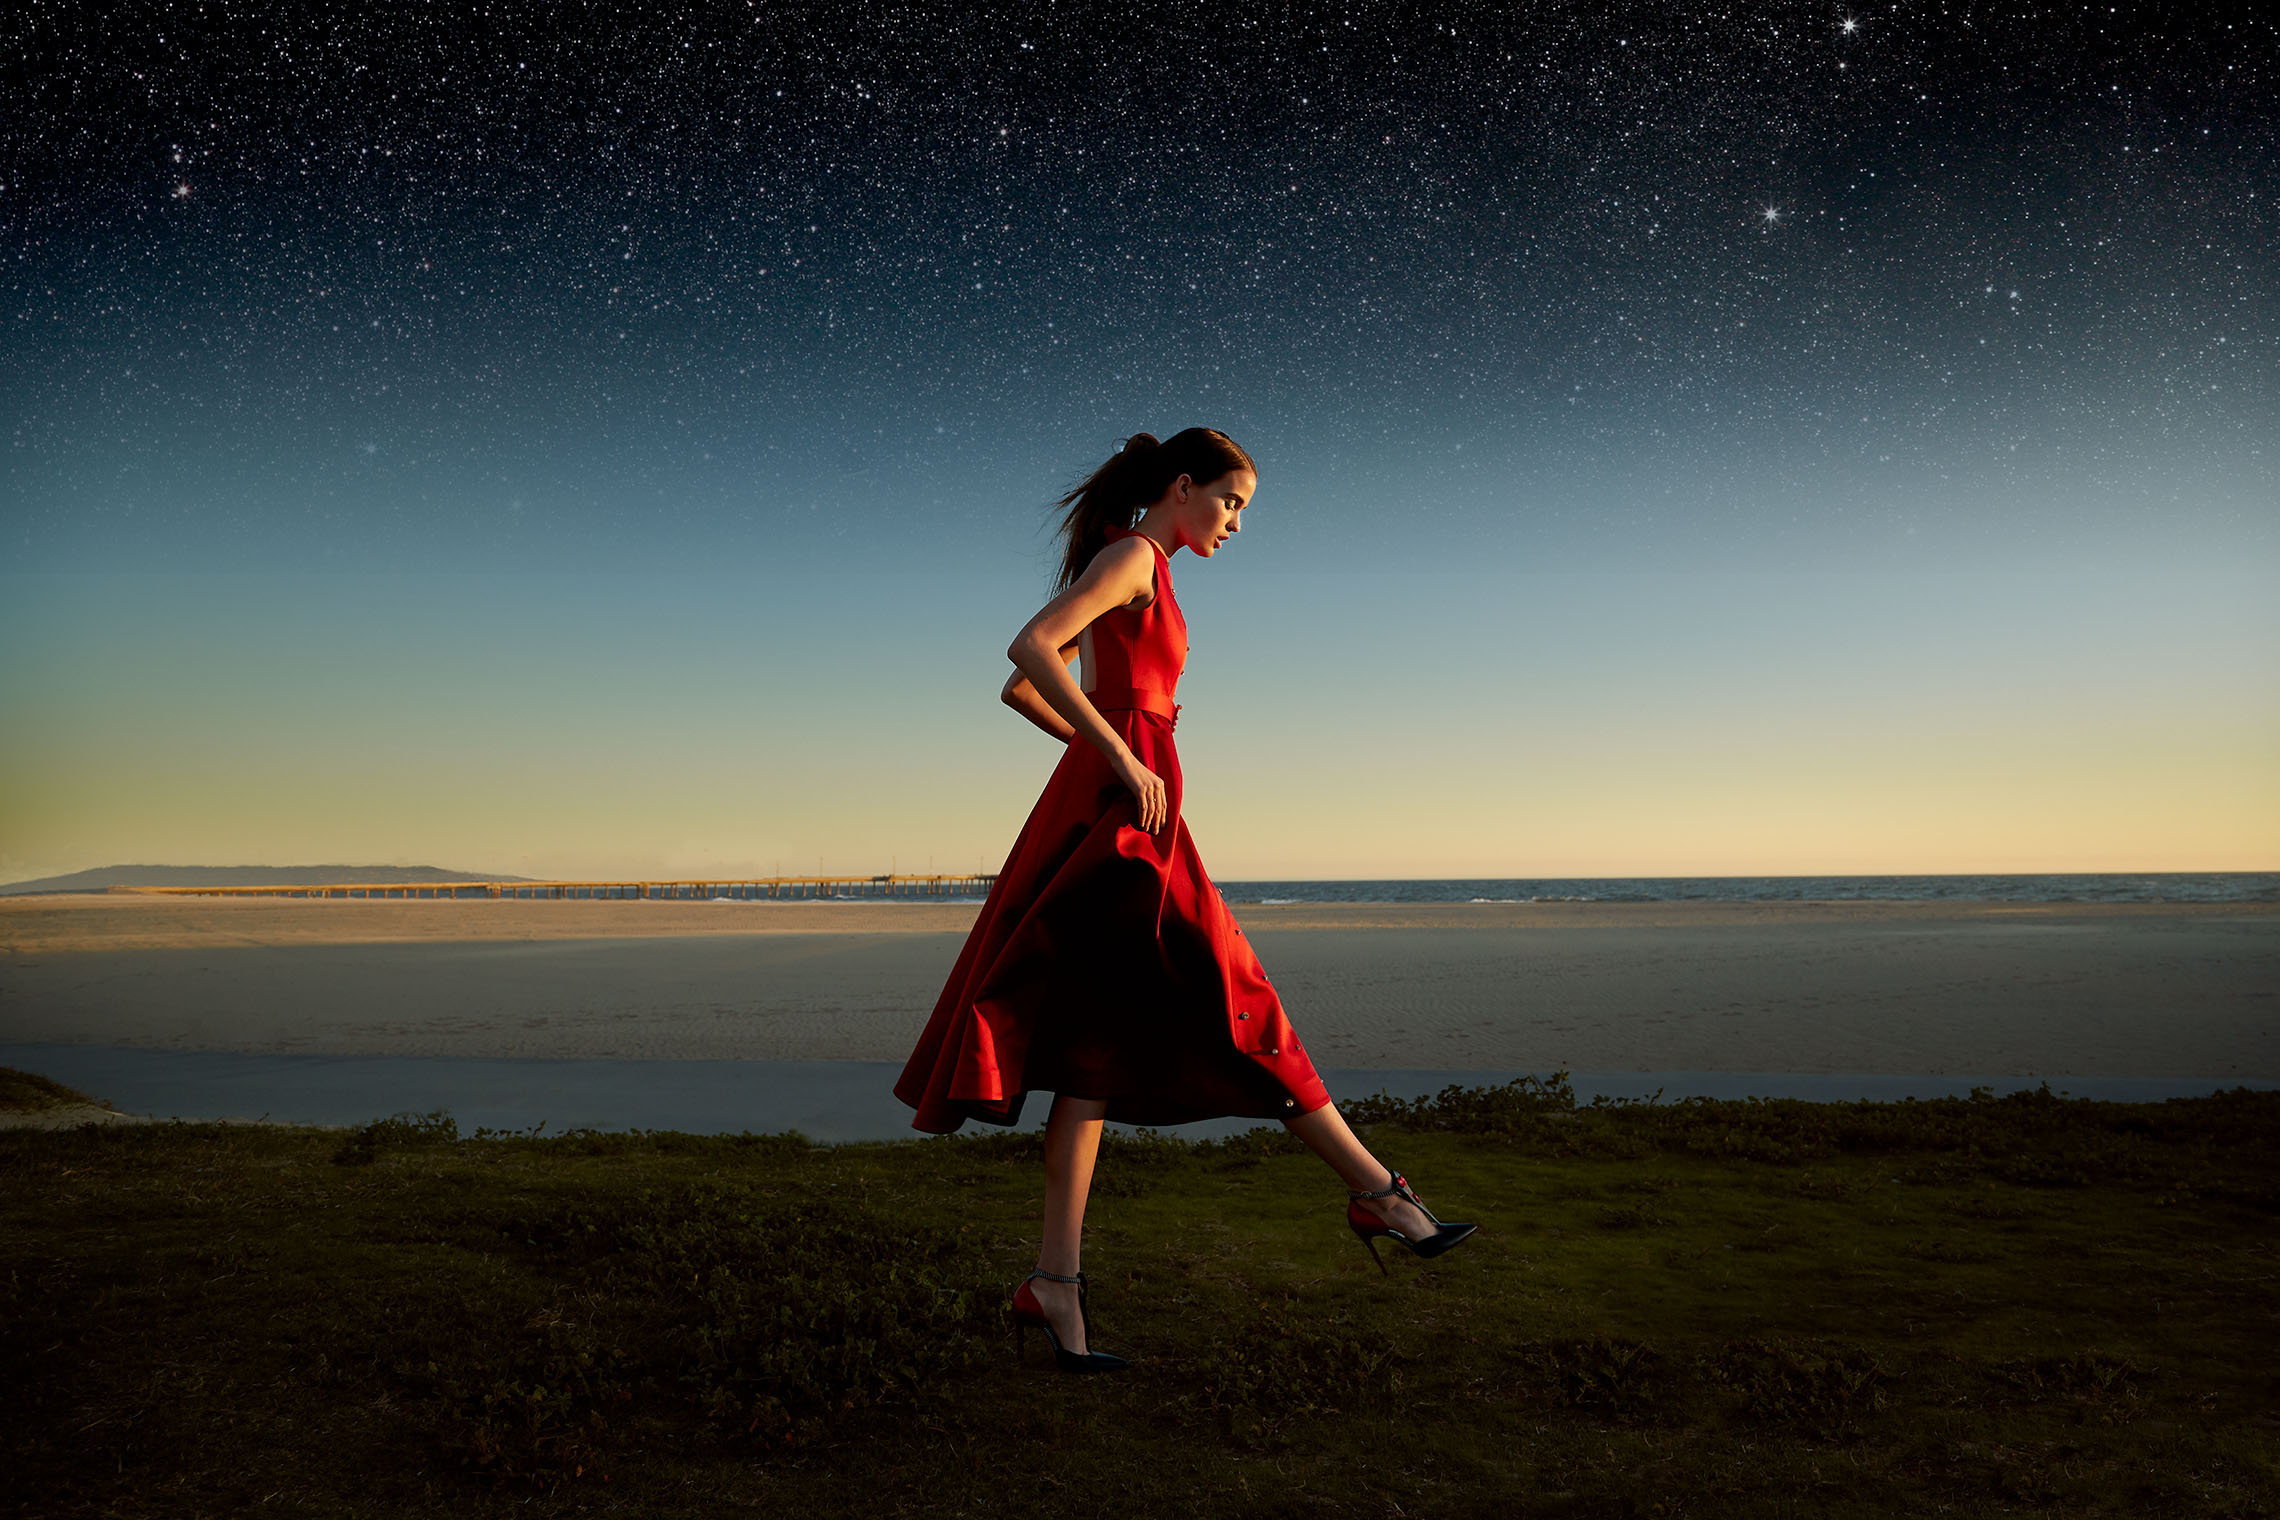 girl in red dress at sunset at the ocean and the stars come out